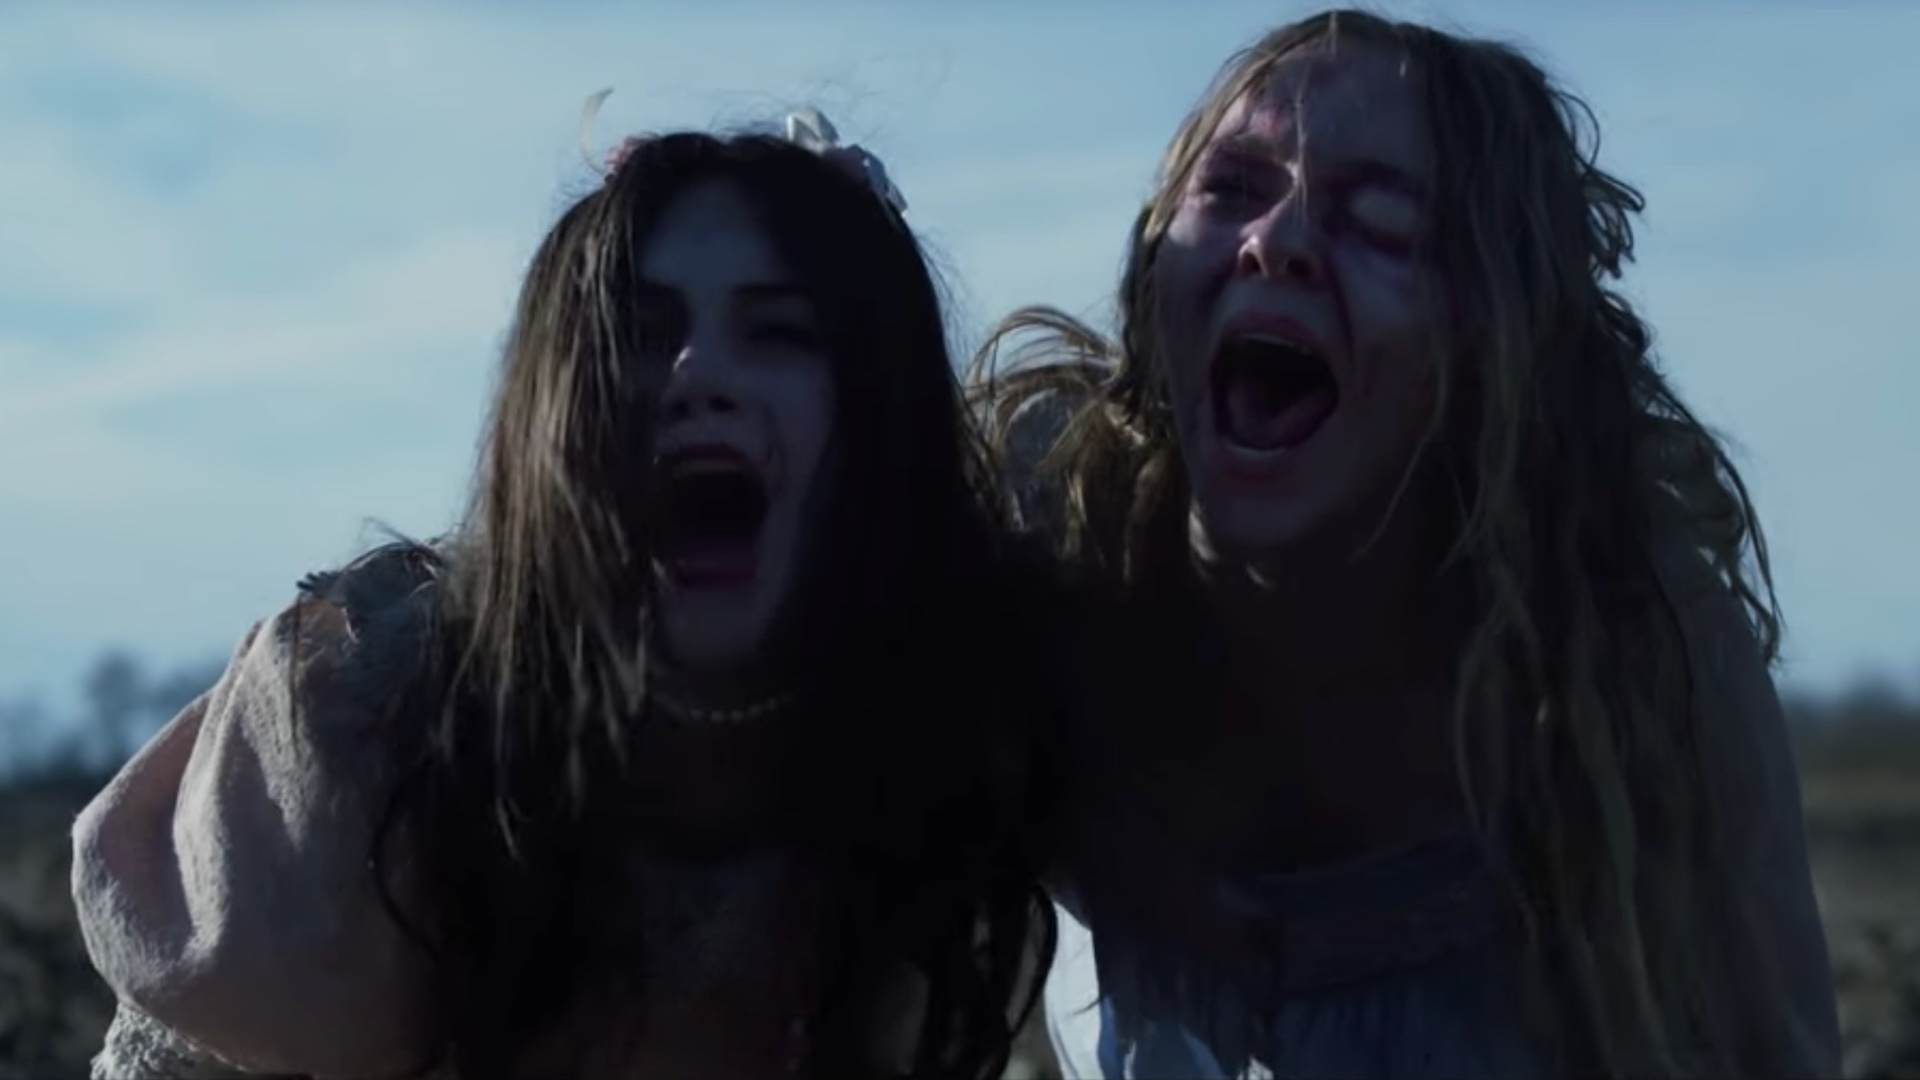 6fc7e03ebfd The first trailer has been released for a crazy looking horror film called  Ghostland and what I m seeing is some high-energy nightmarish stuff.